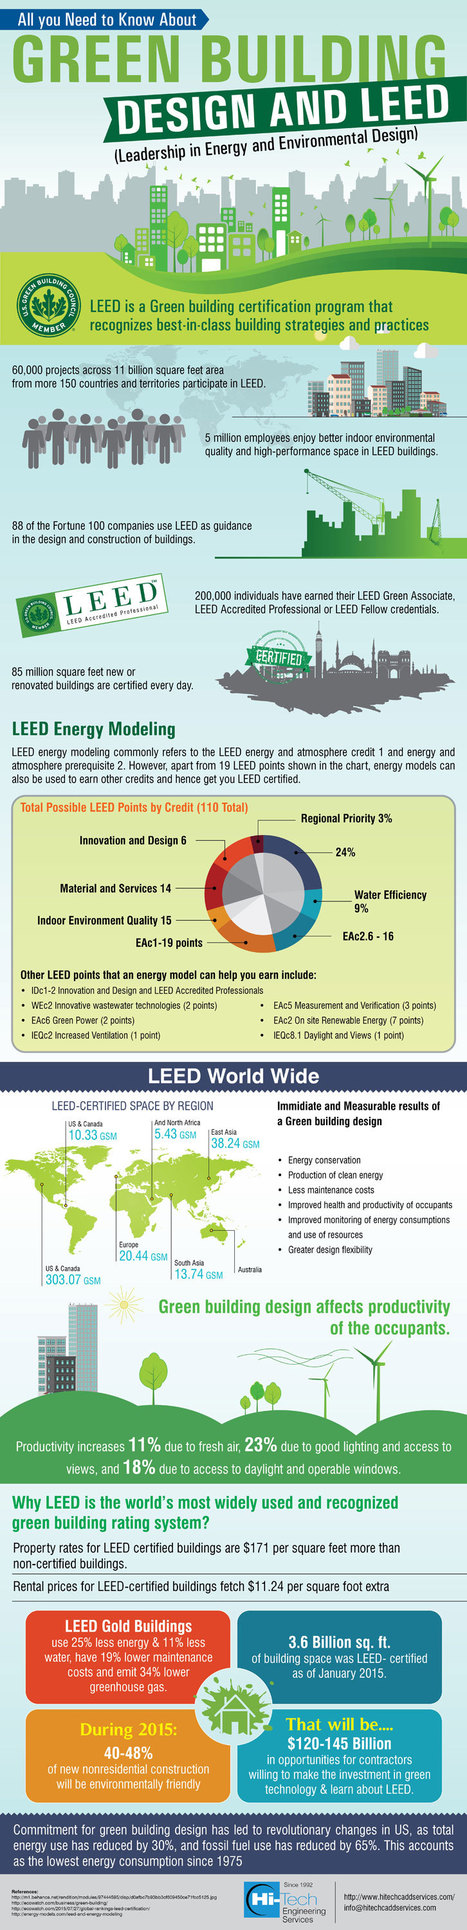 All you Need to Know About Green Building Design and LEED | Energy Modeling Analysis | Scoop.it